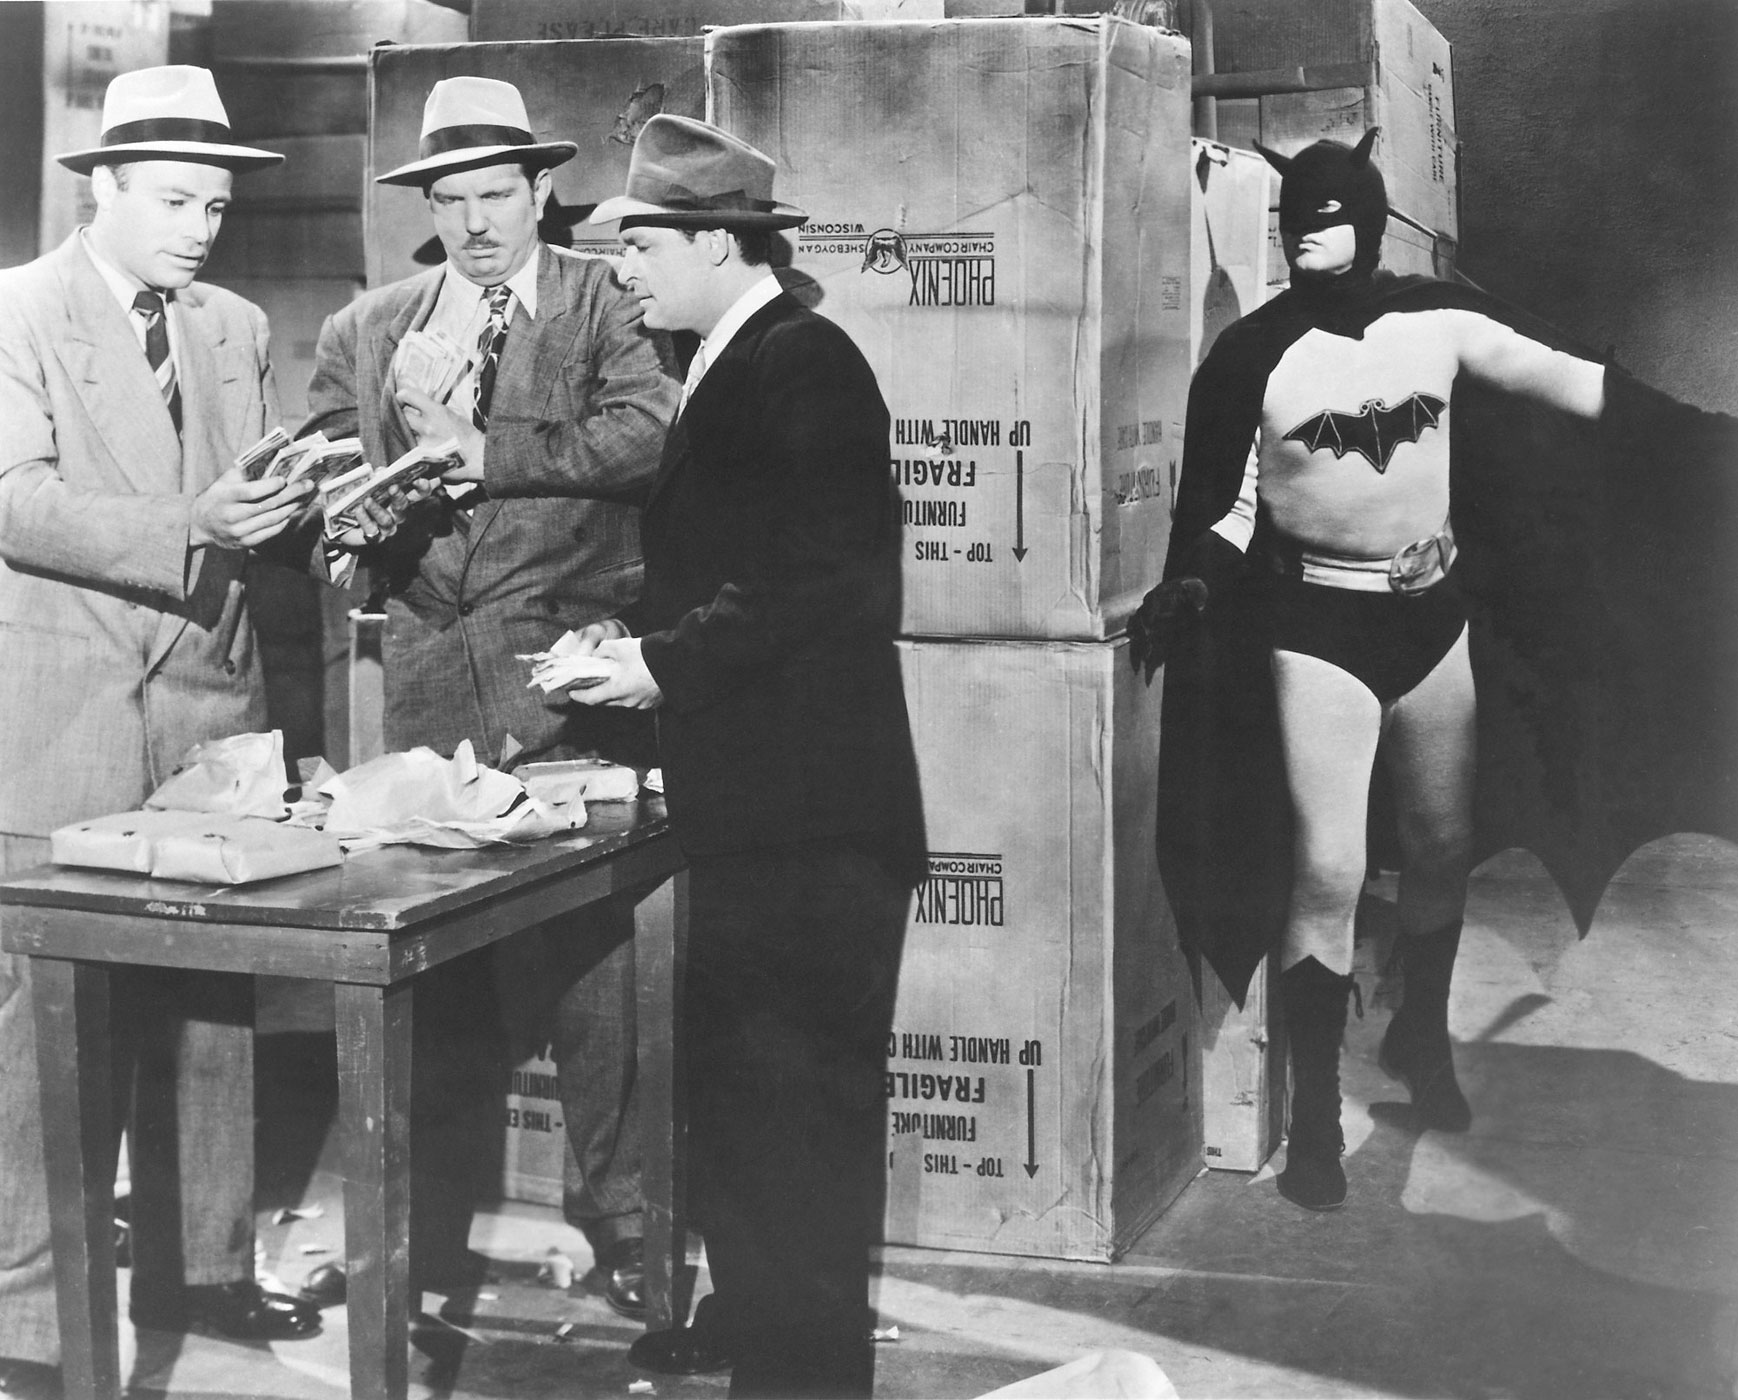 Robert Lowery was the second to don the guise of Batman, playing the caped crusader in the 15 chapter serial, <i>Batman and Robin</i> in 1949.